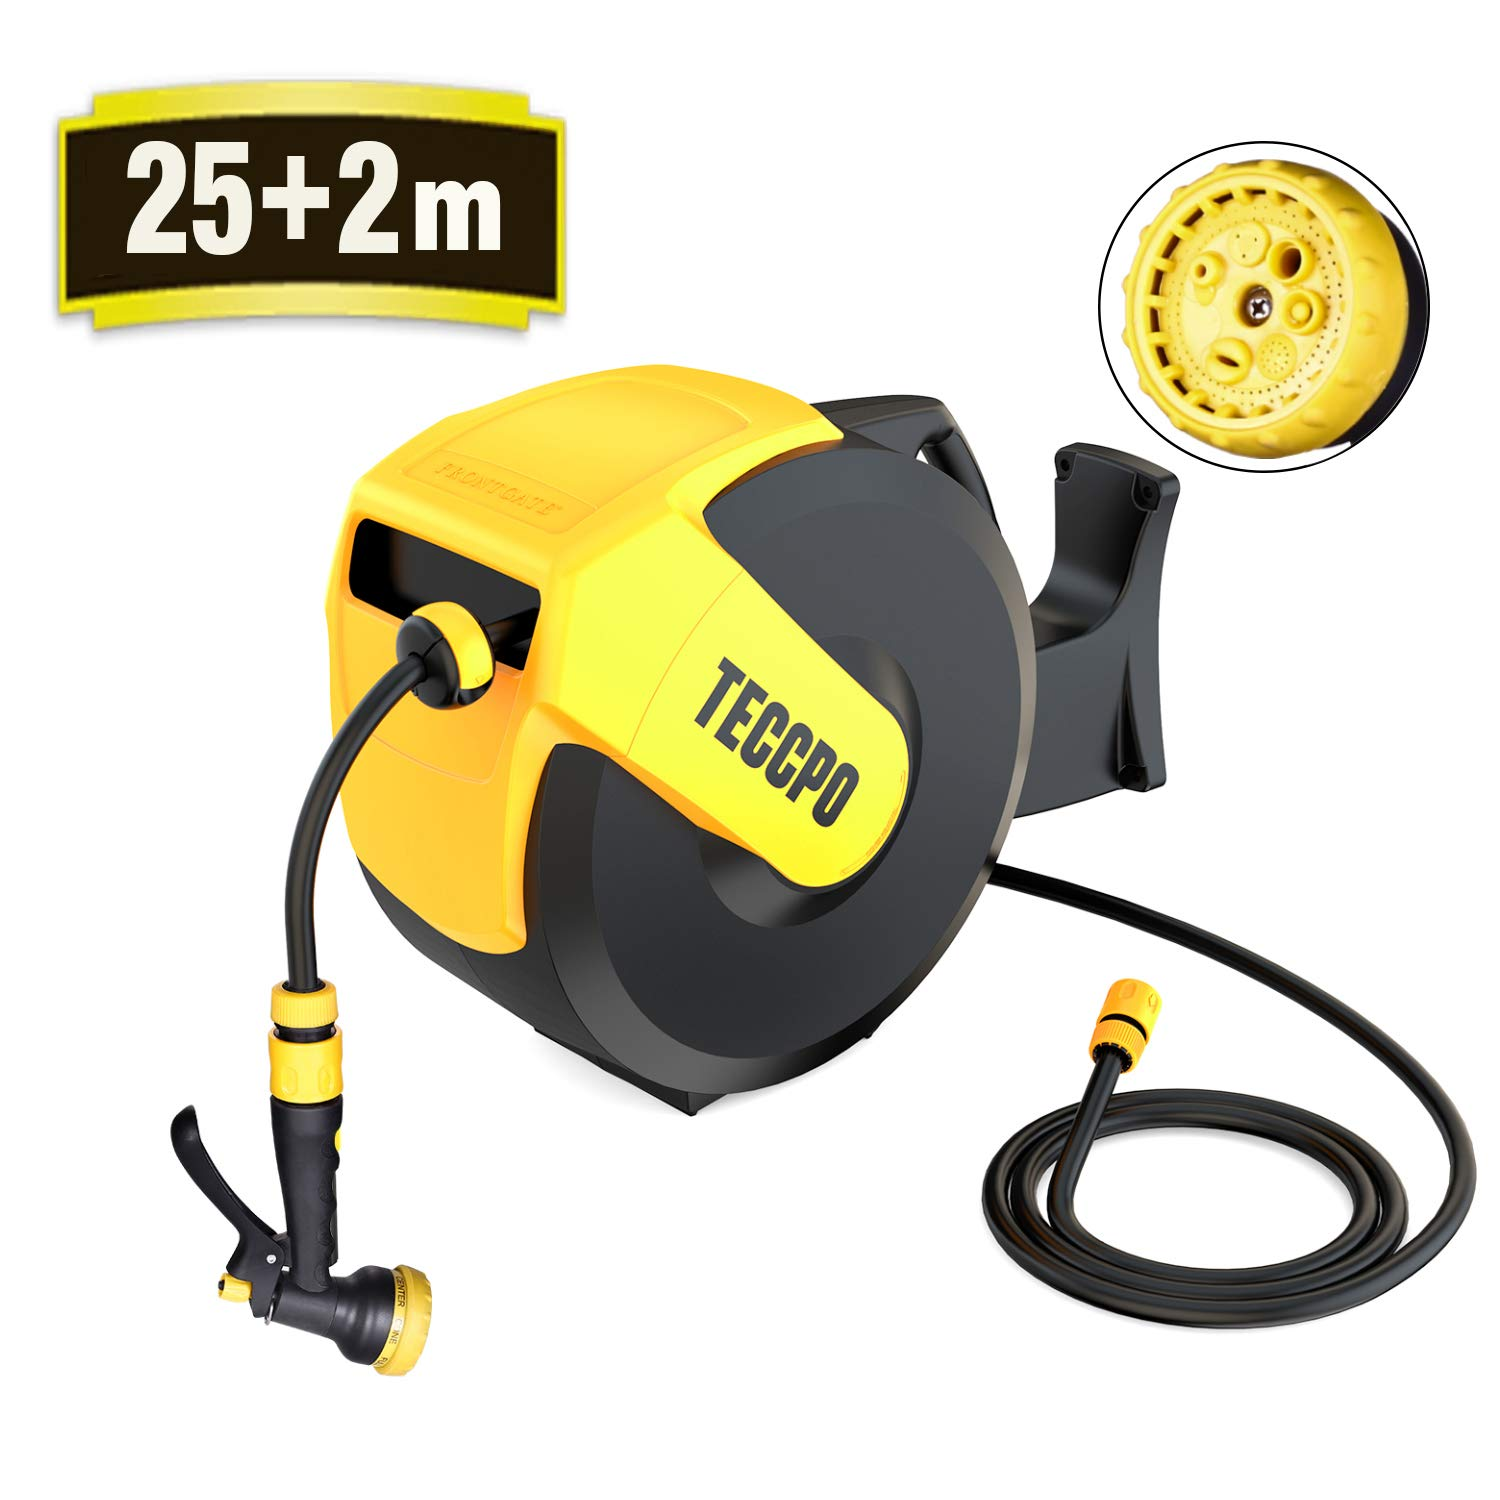 TECCPO Hose Reel, 25m + 2m Auto Reel, with 7 Modes Hose Spray Gun, Any Length Lock, Safe and Slow Retraction, Wall-Mounted Hose Reel Rotating 180° -TAR001G